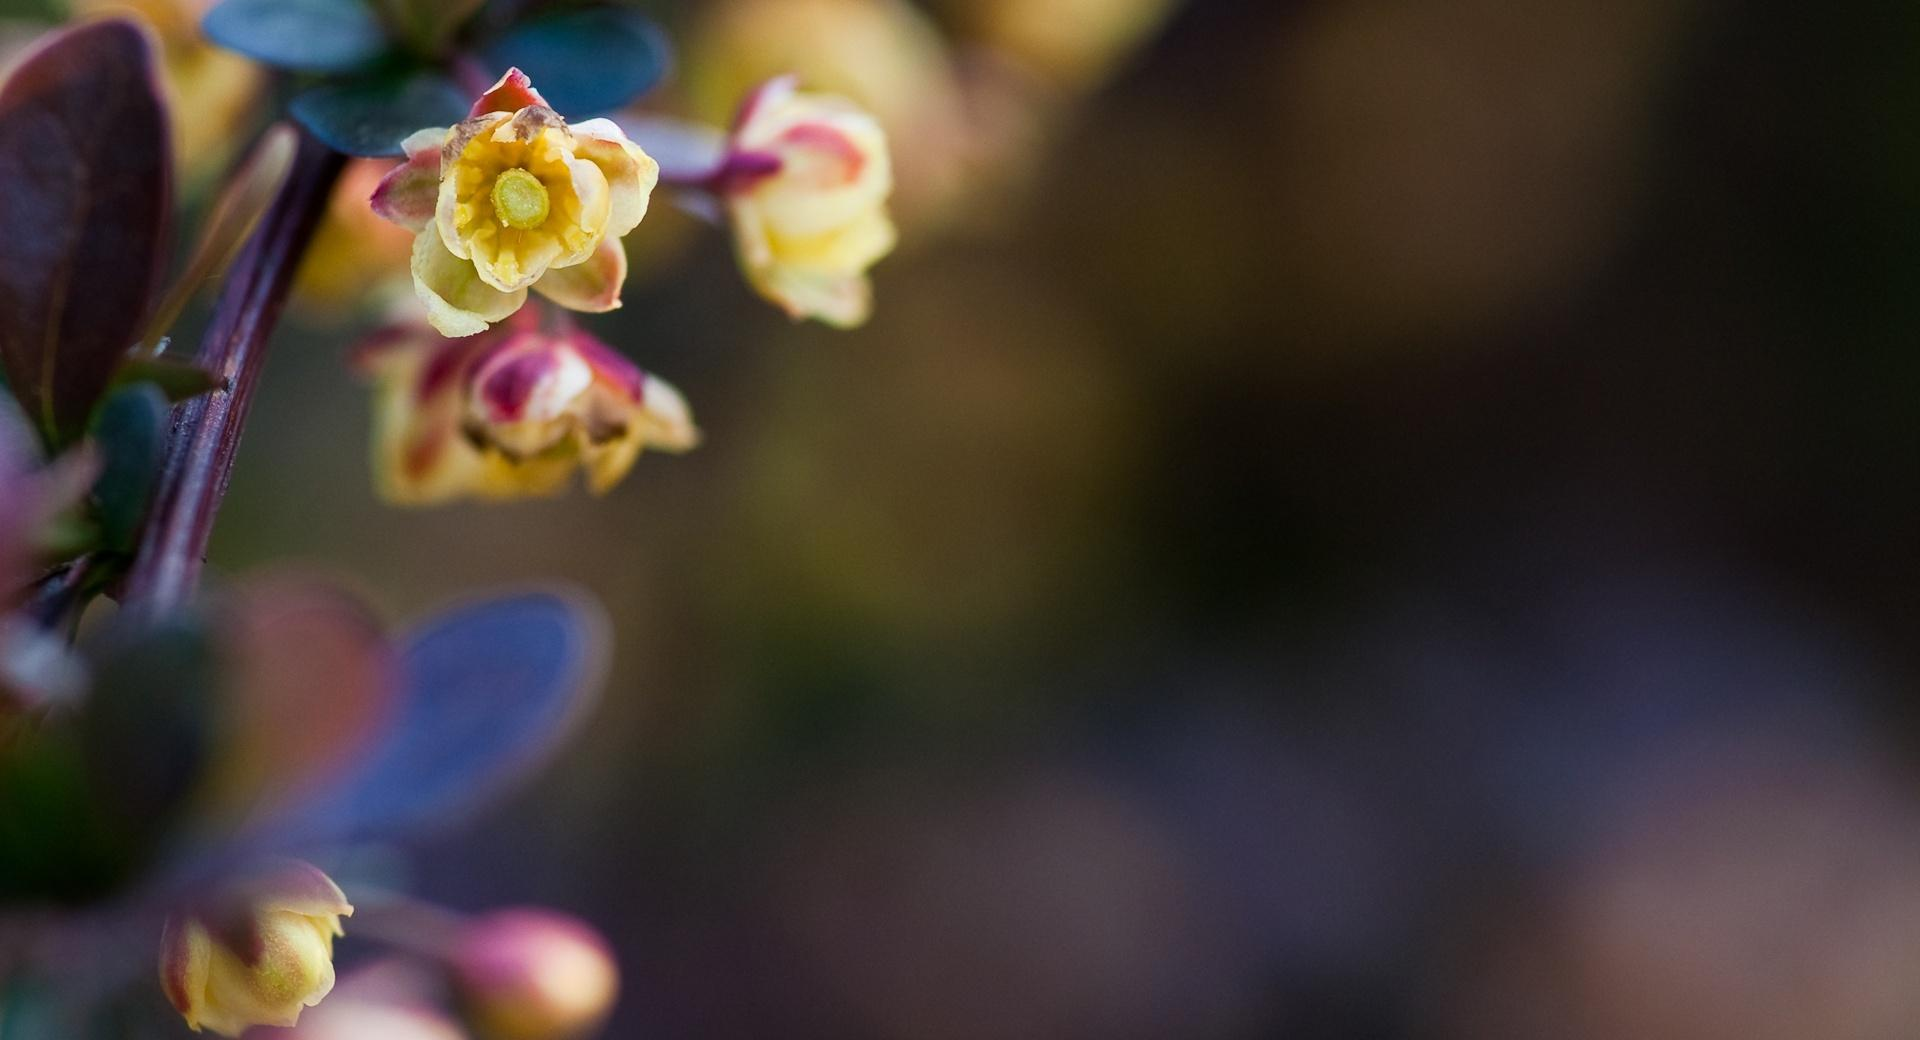 Tiny Flowers Macro at 640 x 960 iPhone 4 size wallpapers HD quality